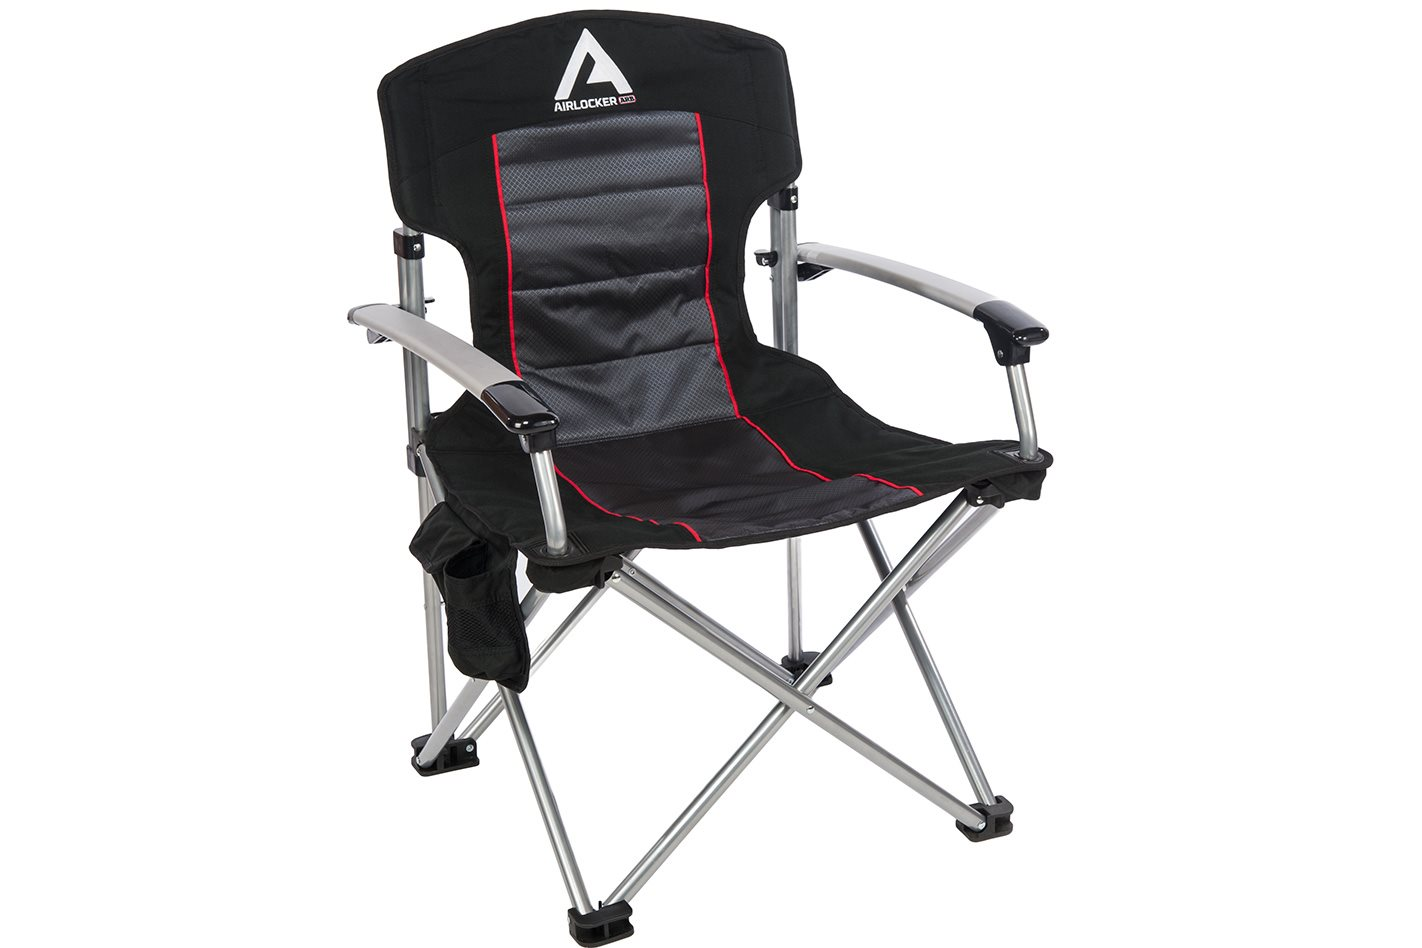 Arb Camp Chairs Product Test 4x4 Australia